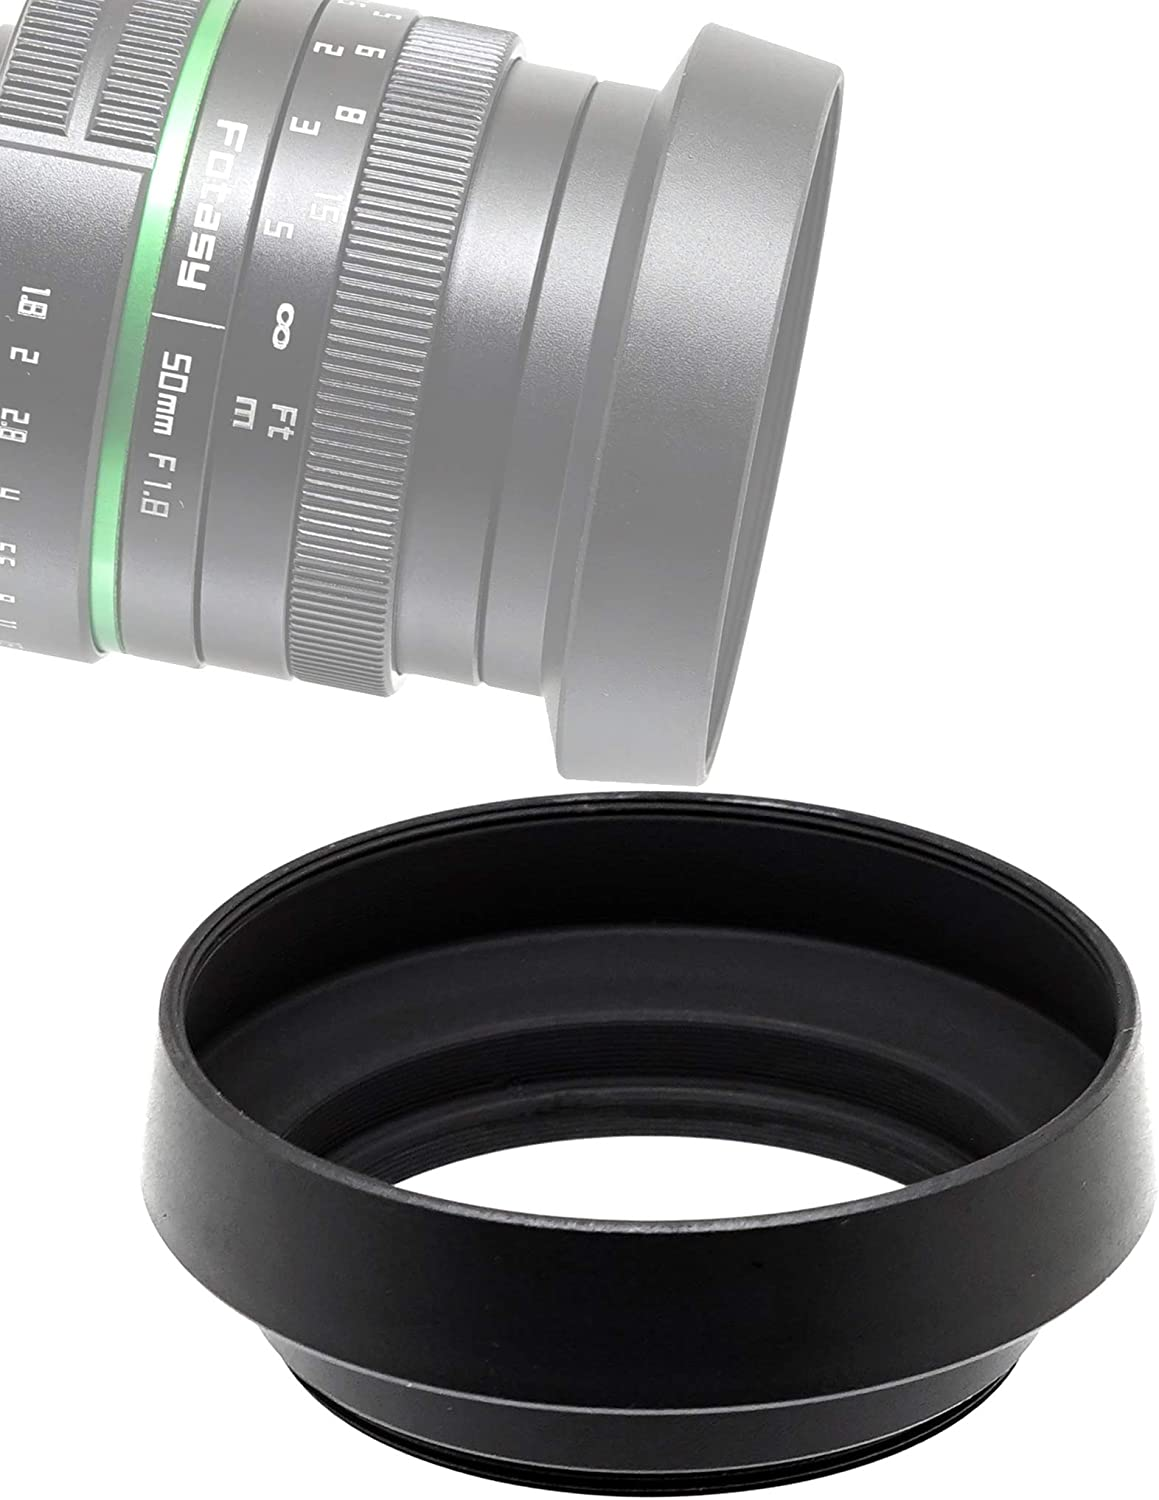 Fotasy Metal Screw-In Lens Hood for Panasonic Lumix 14mm F2.5 /Panasonic 20mm f1.7 Lens/ Leica DG 25mm F1.4 Lens/ Olympus M.Zuiko 17mm f1.8 Lens, 46mm Curved Lens Hood, Panasonic 20mm f1.7 Lens Hood